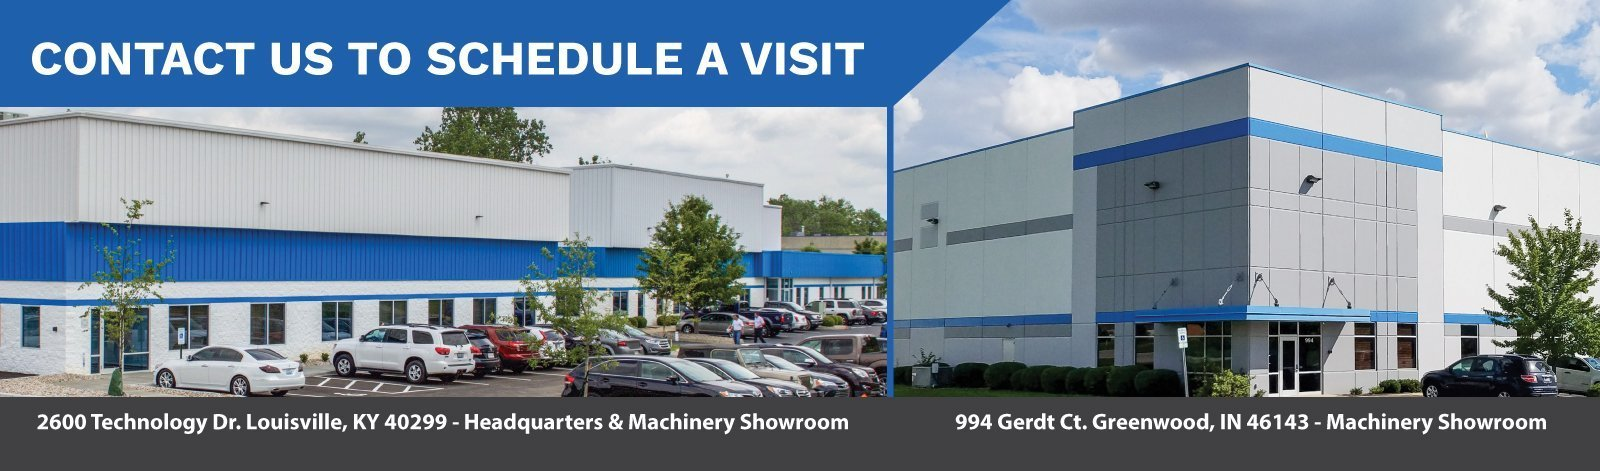 Meredith Machinery schedule a visit Indiana Kentucky CNC Distributor